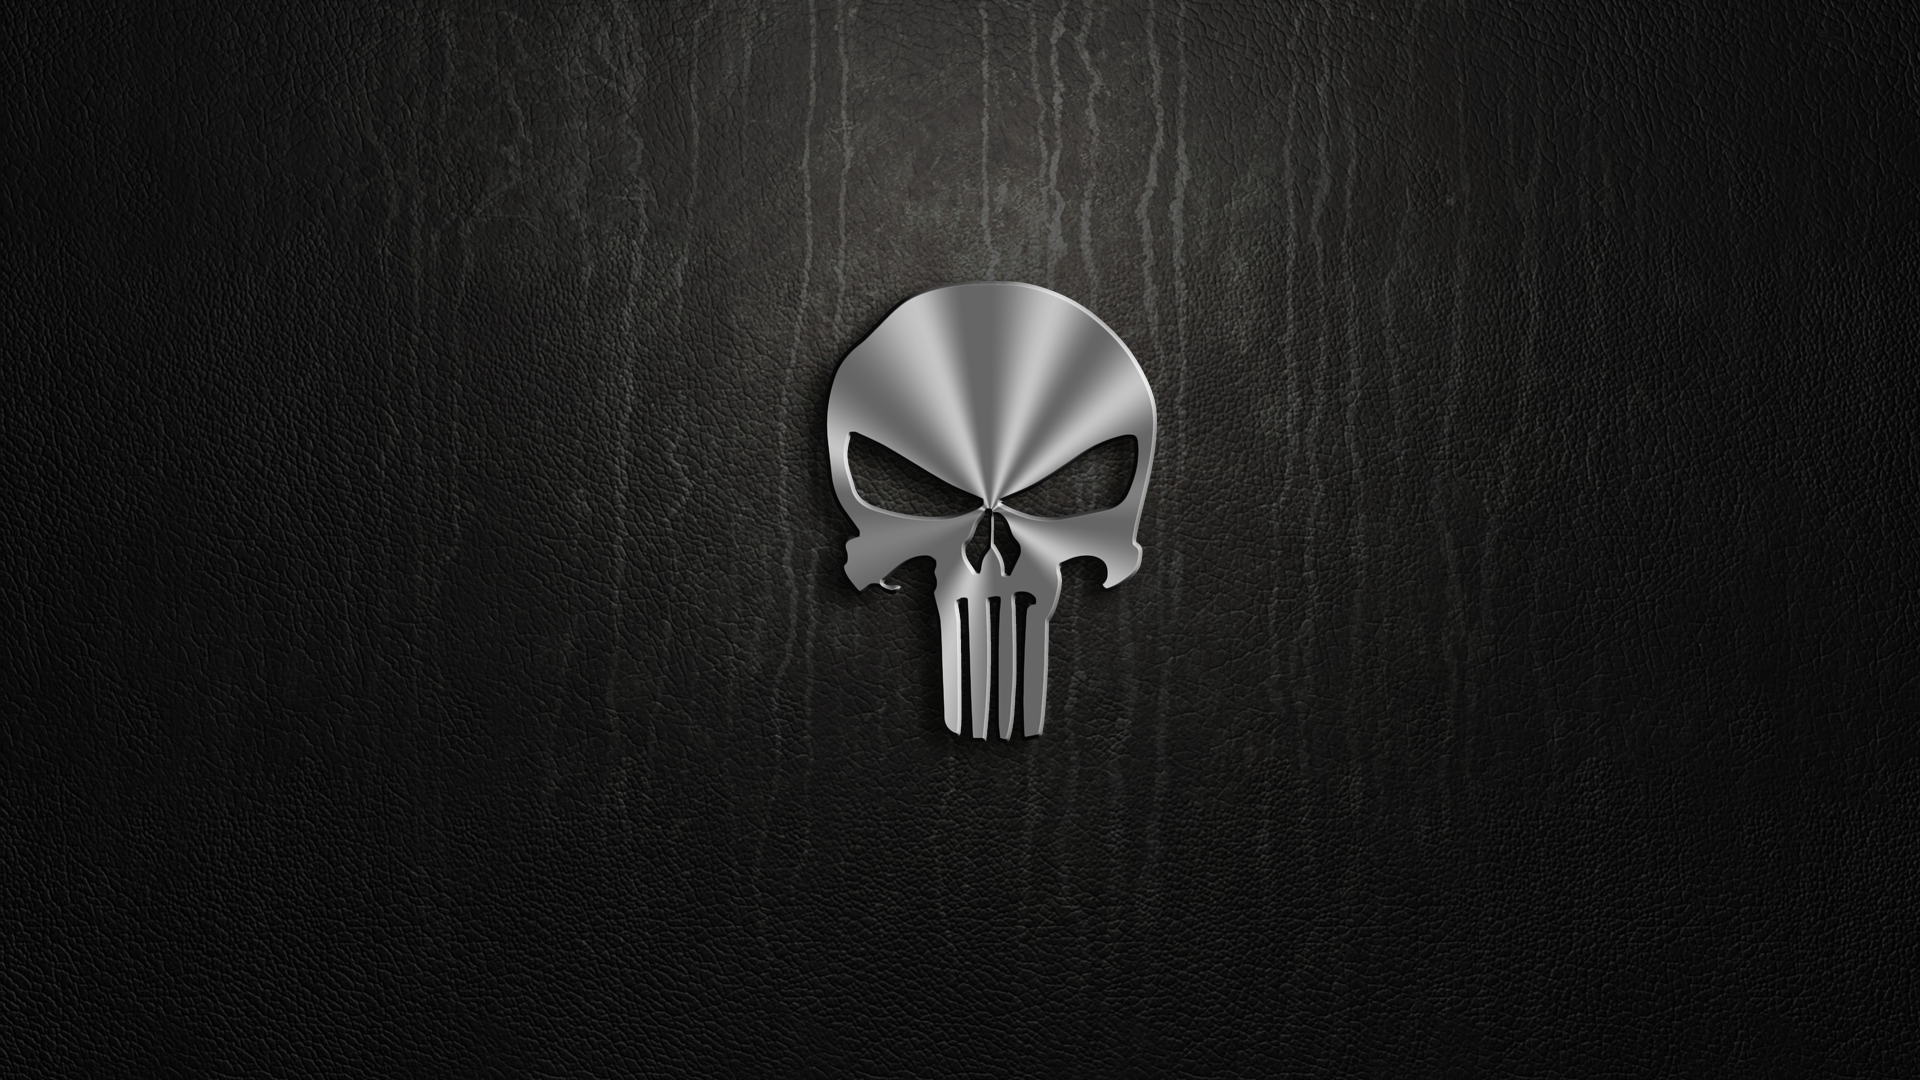 The Punisher Hd Wallpapers Backgrounds Wallpaper Black Skulls Wallpaper Skull Wallpaper Hd Wallpapers For Laptop